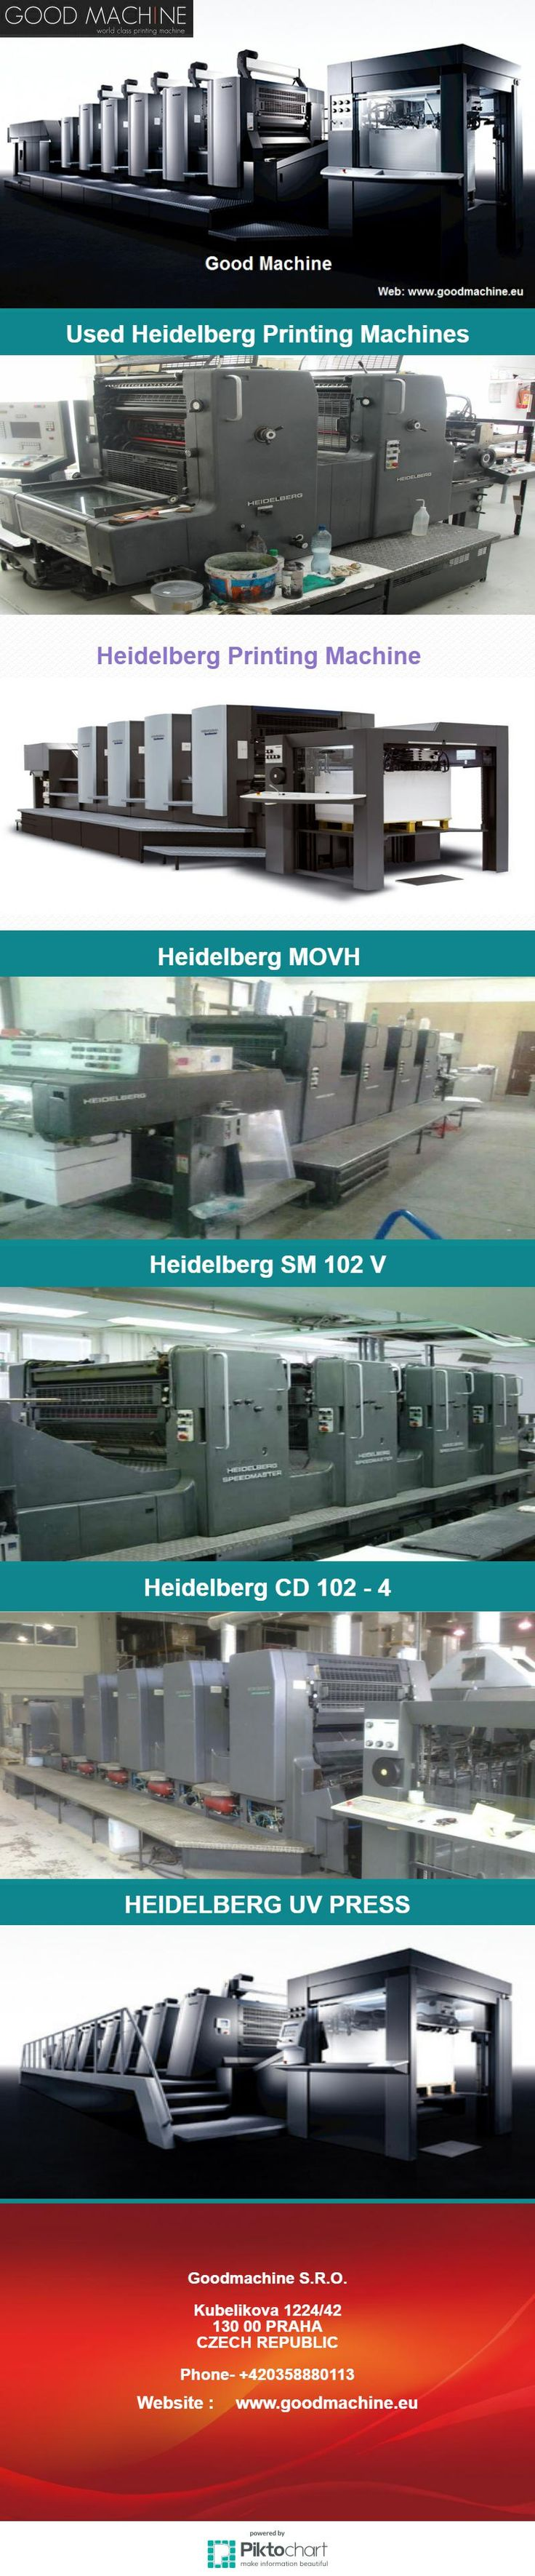 Those on the lookout to buy Used Heidelberg 72 v or any other branded printing press may get in touch with Goodmachine, a reliable Used Heidelberg Printing Machines Dealer.